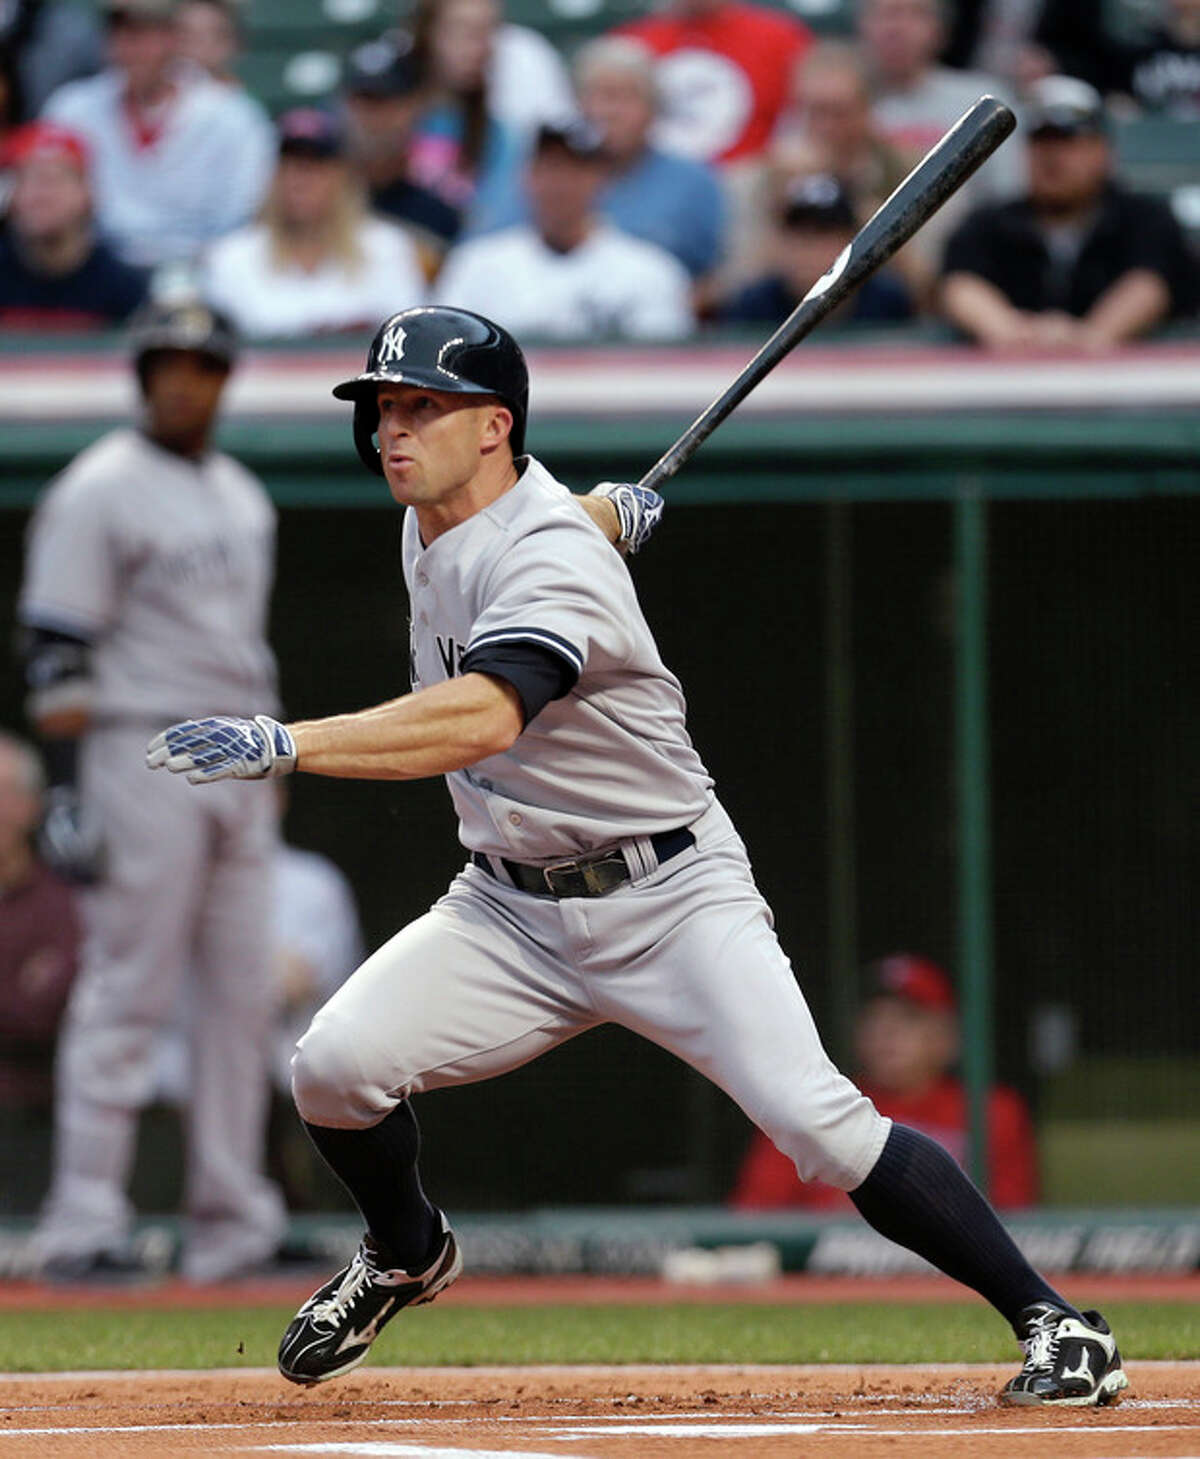 New York Yankees' Brett Gardner watches his double off Cleveland Indians starting pitcher Carlos Carrasco in the first inning of a baseball game, Tuesday, April 9, 2013, in Cleveland. (AP Photo/Tony Dejak)